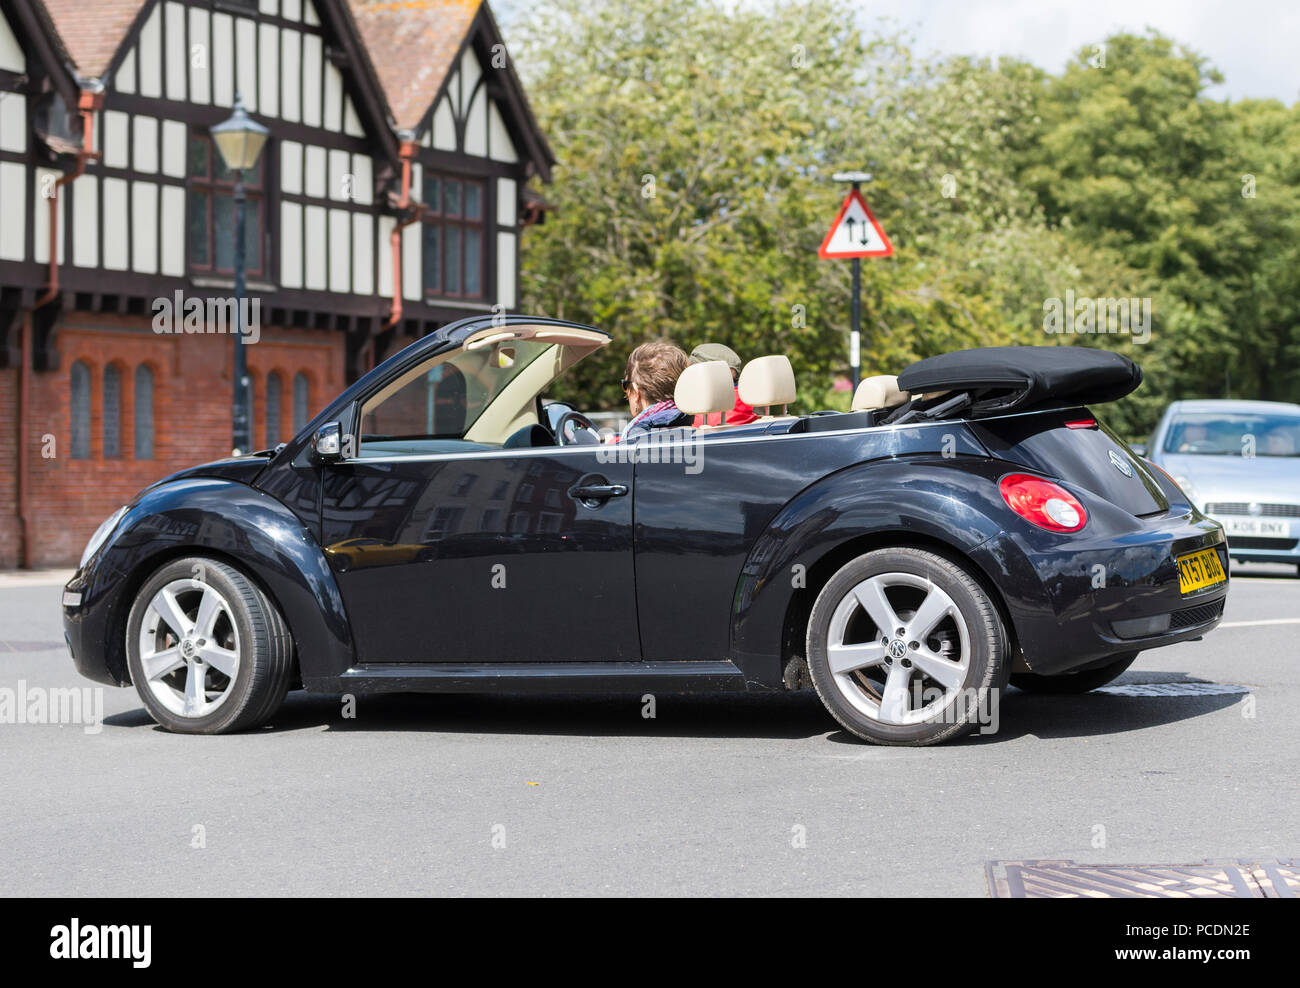 Black Volkswagen Beetle TDi convertible open top car from 2007 with the top down on a hot summer day in England, UK. - Stock Image